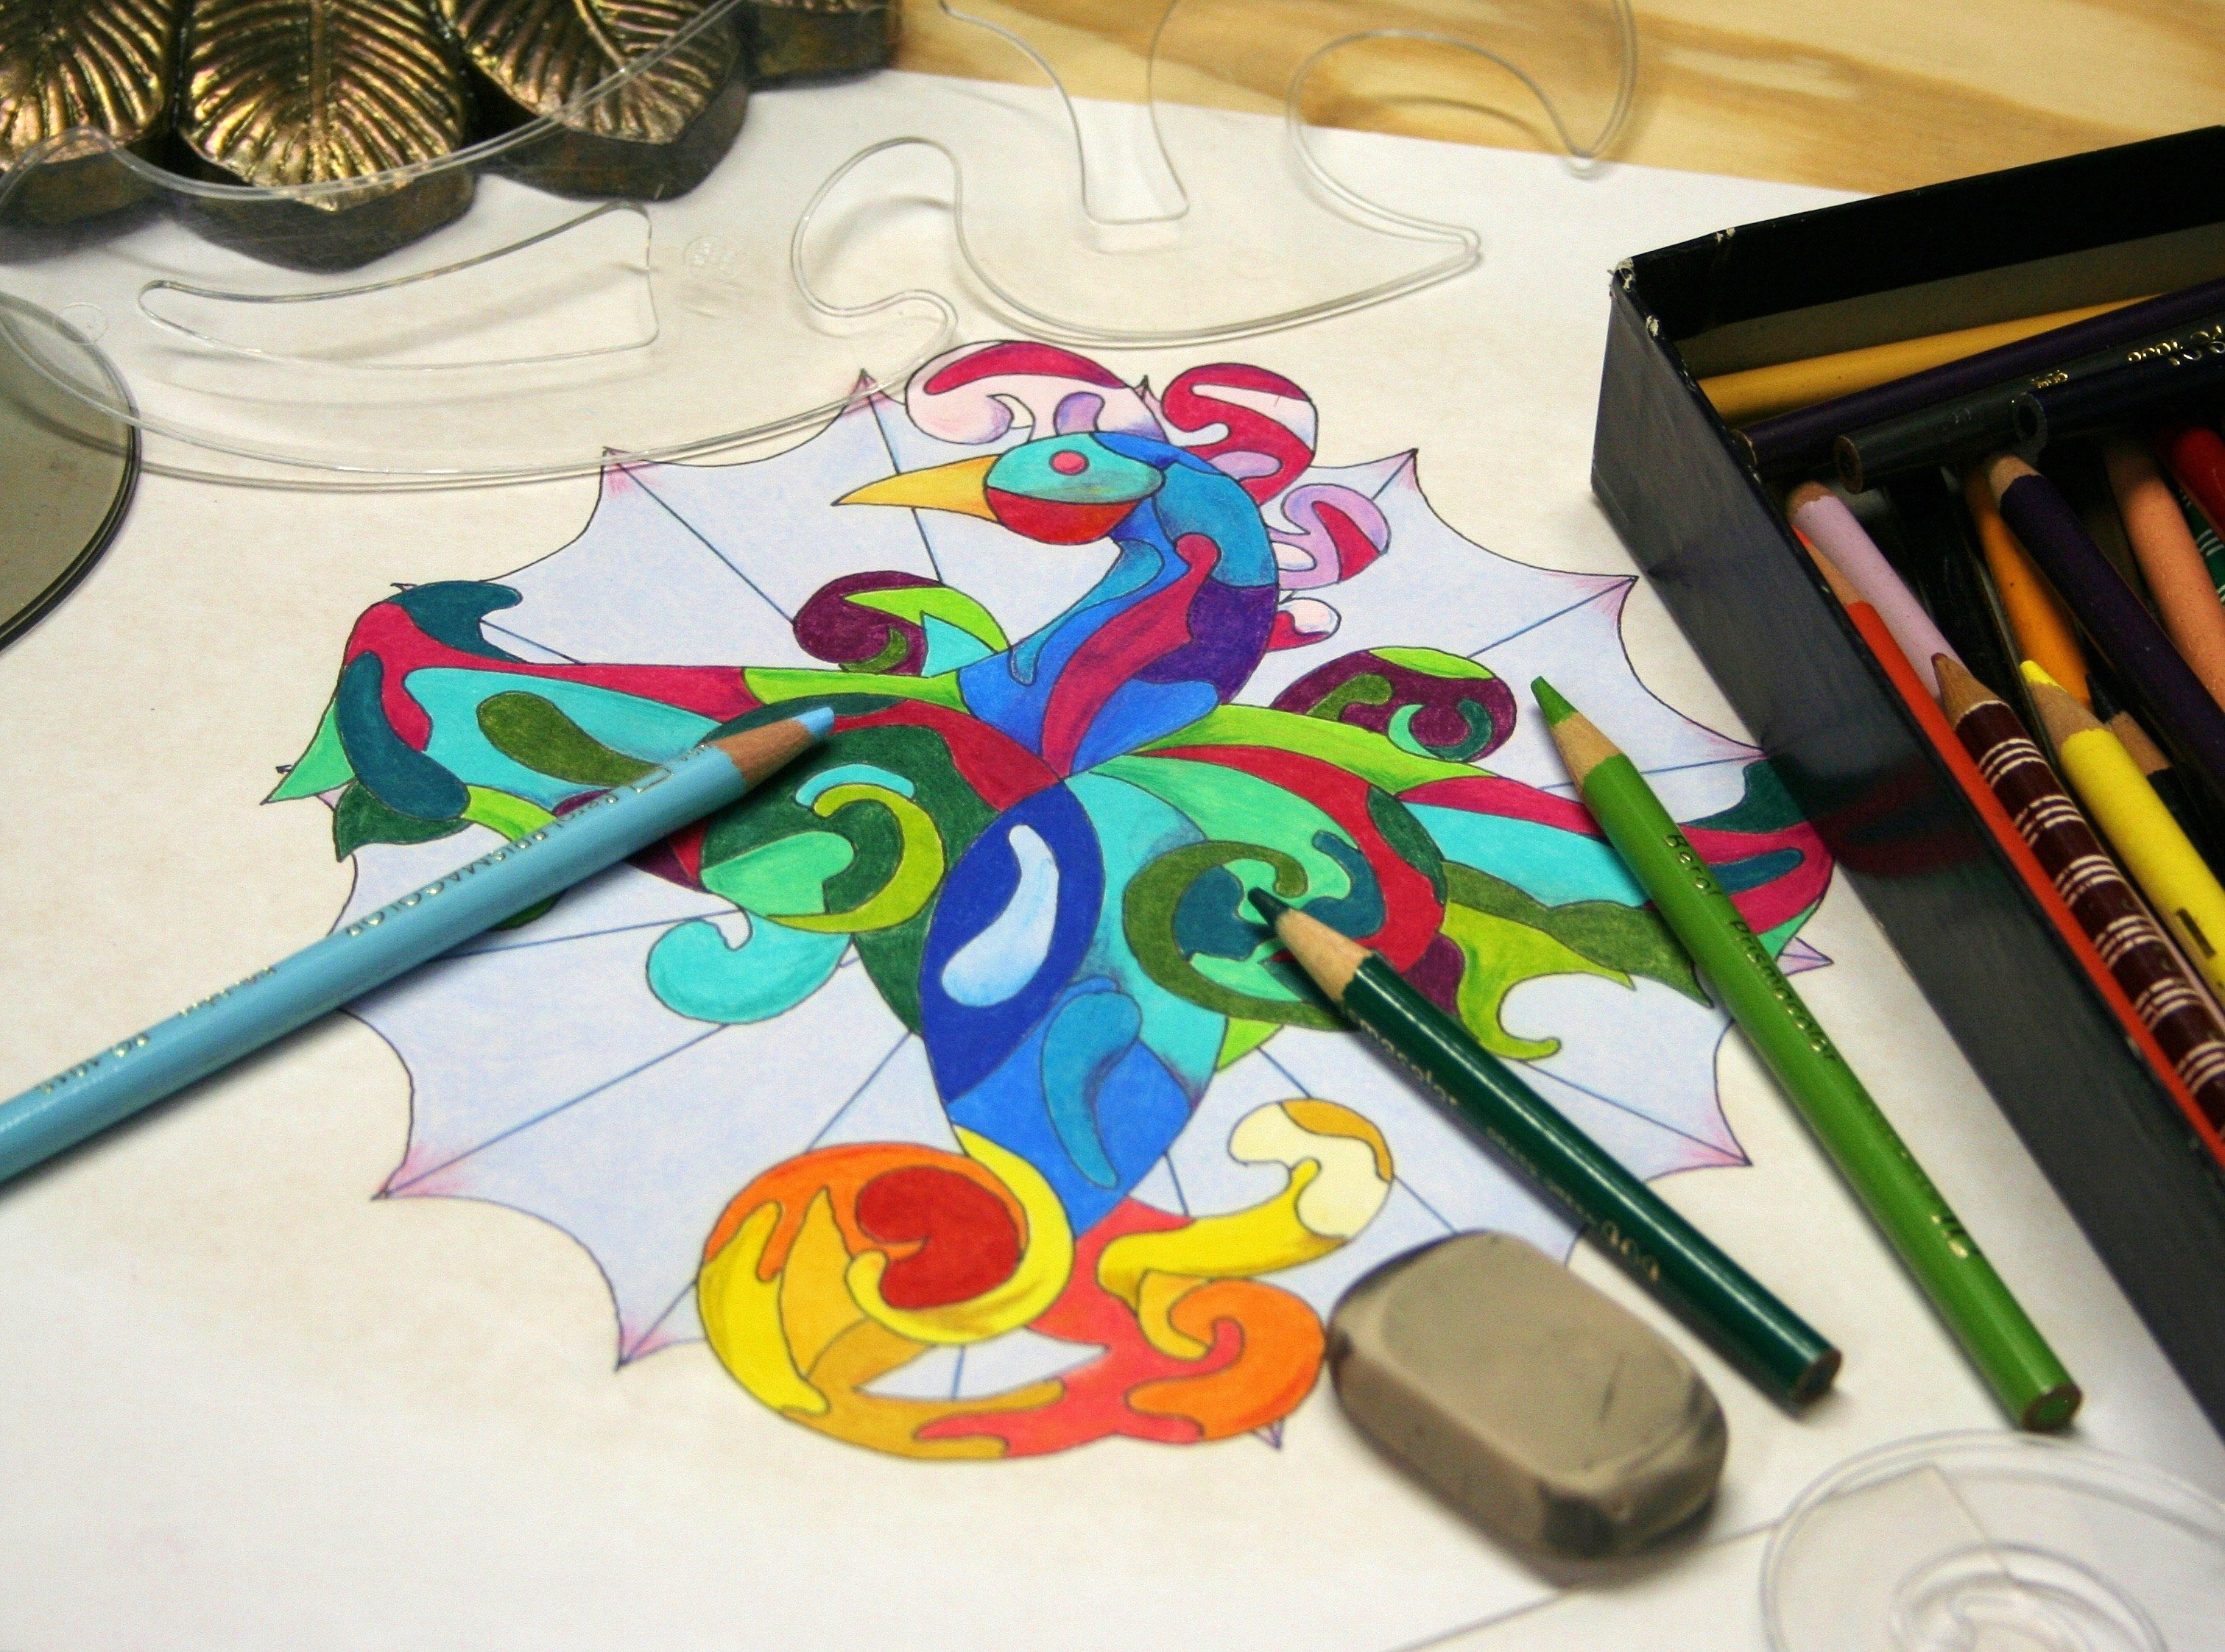 Coloring with pencils and stencils image - Free stock photo - Public ...